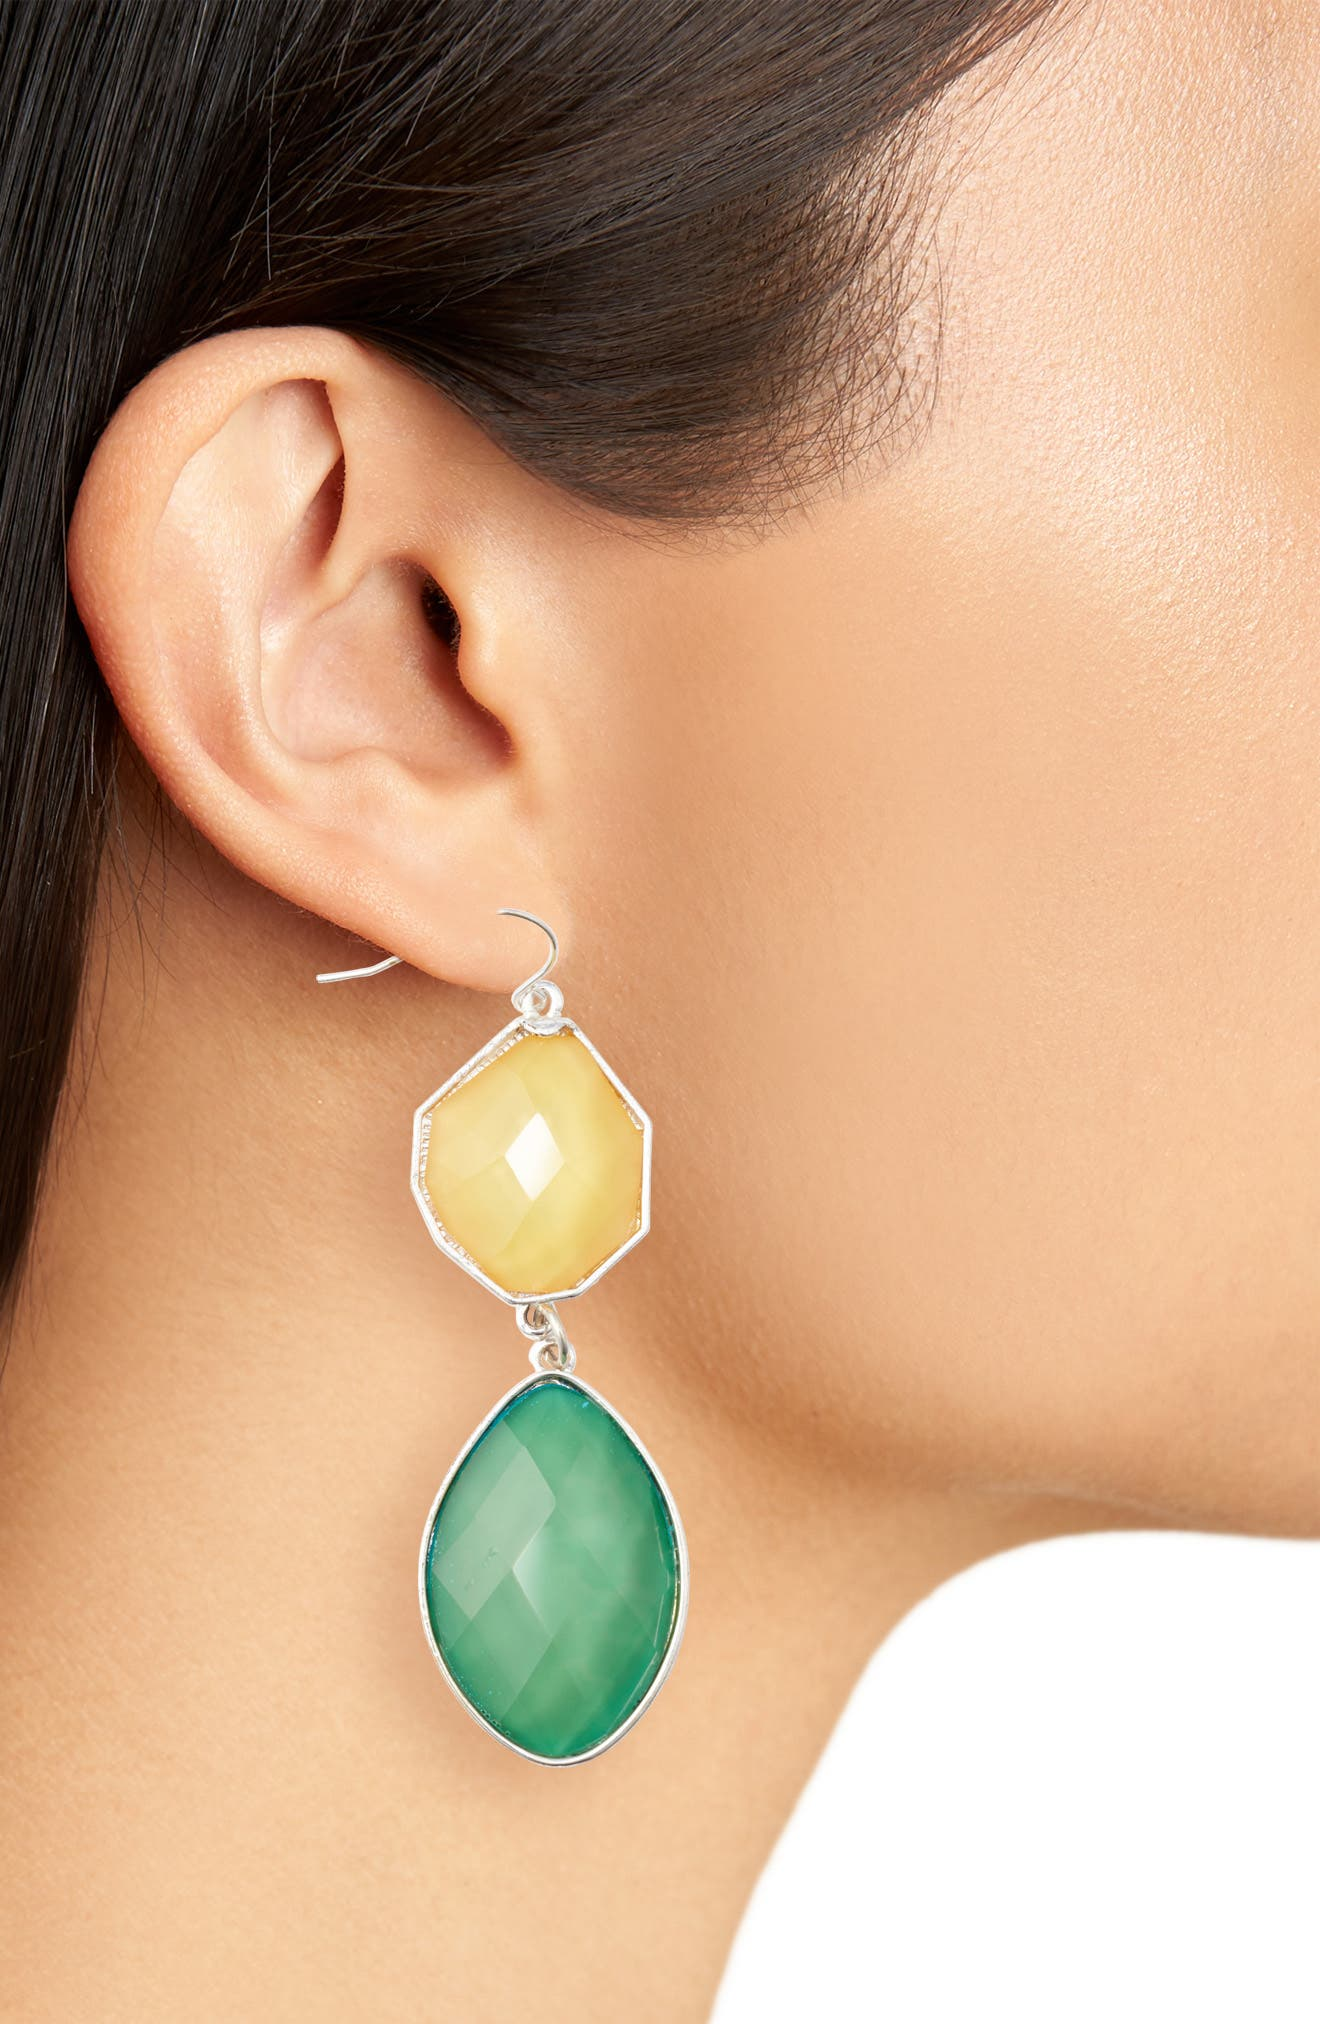 Stone Drop Earrings,                             Alternate thumbnail 2, color,                             Light Green/ Yellow